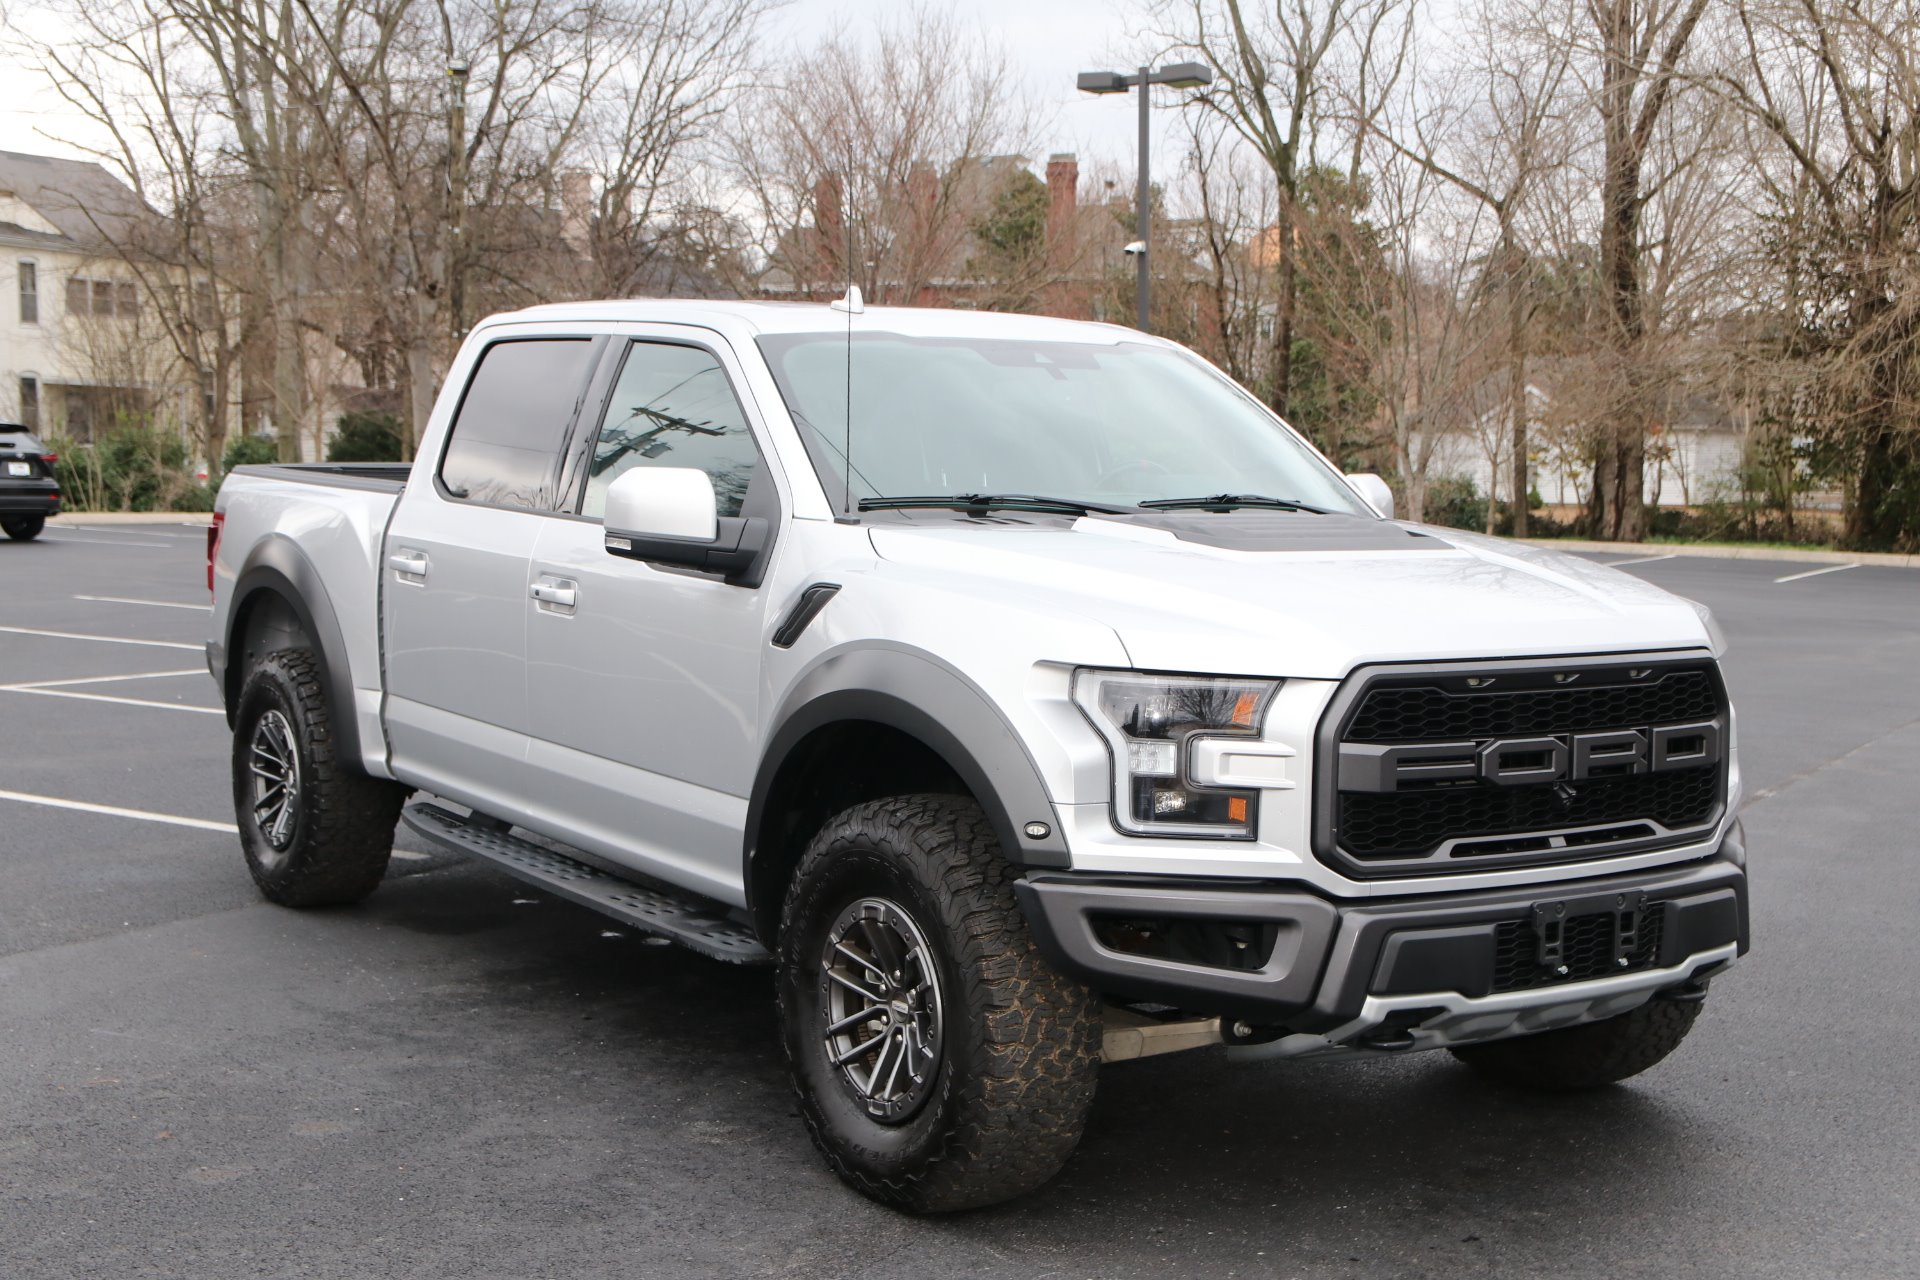 Used 2019 Ford F-150 Raptor Crew cab 4x4 Raptor for sale Sold at Auto Collection in Murfreesboro TN 37130 1